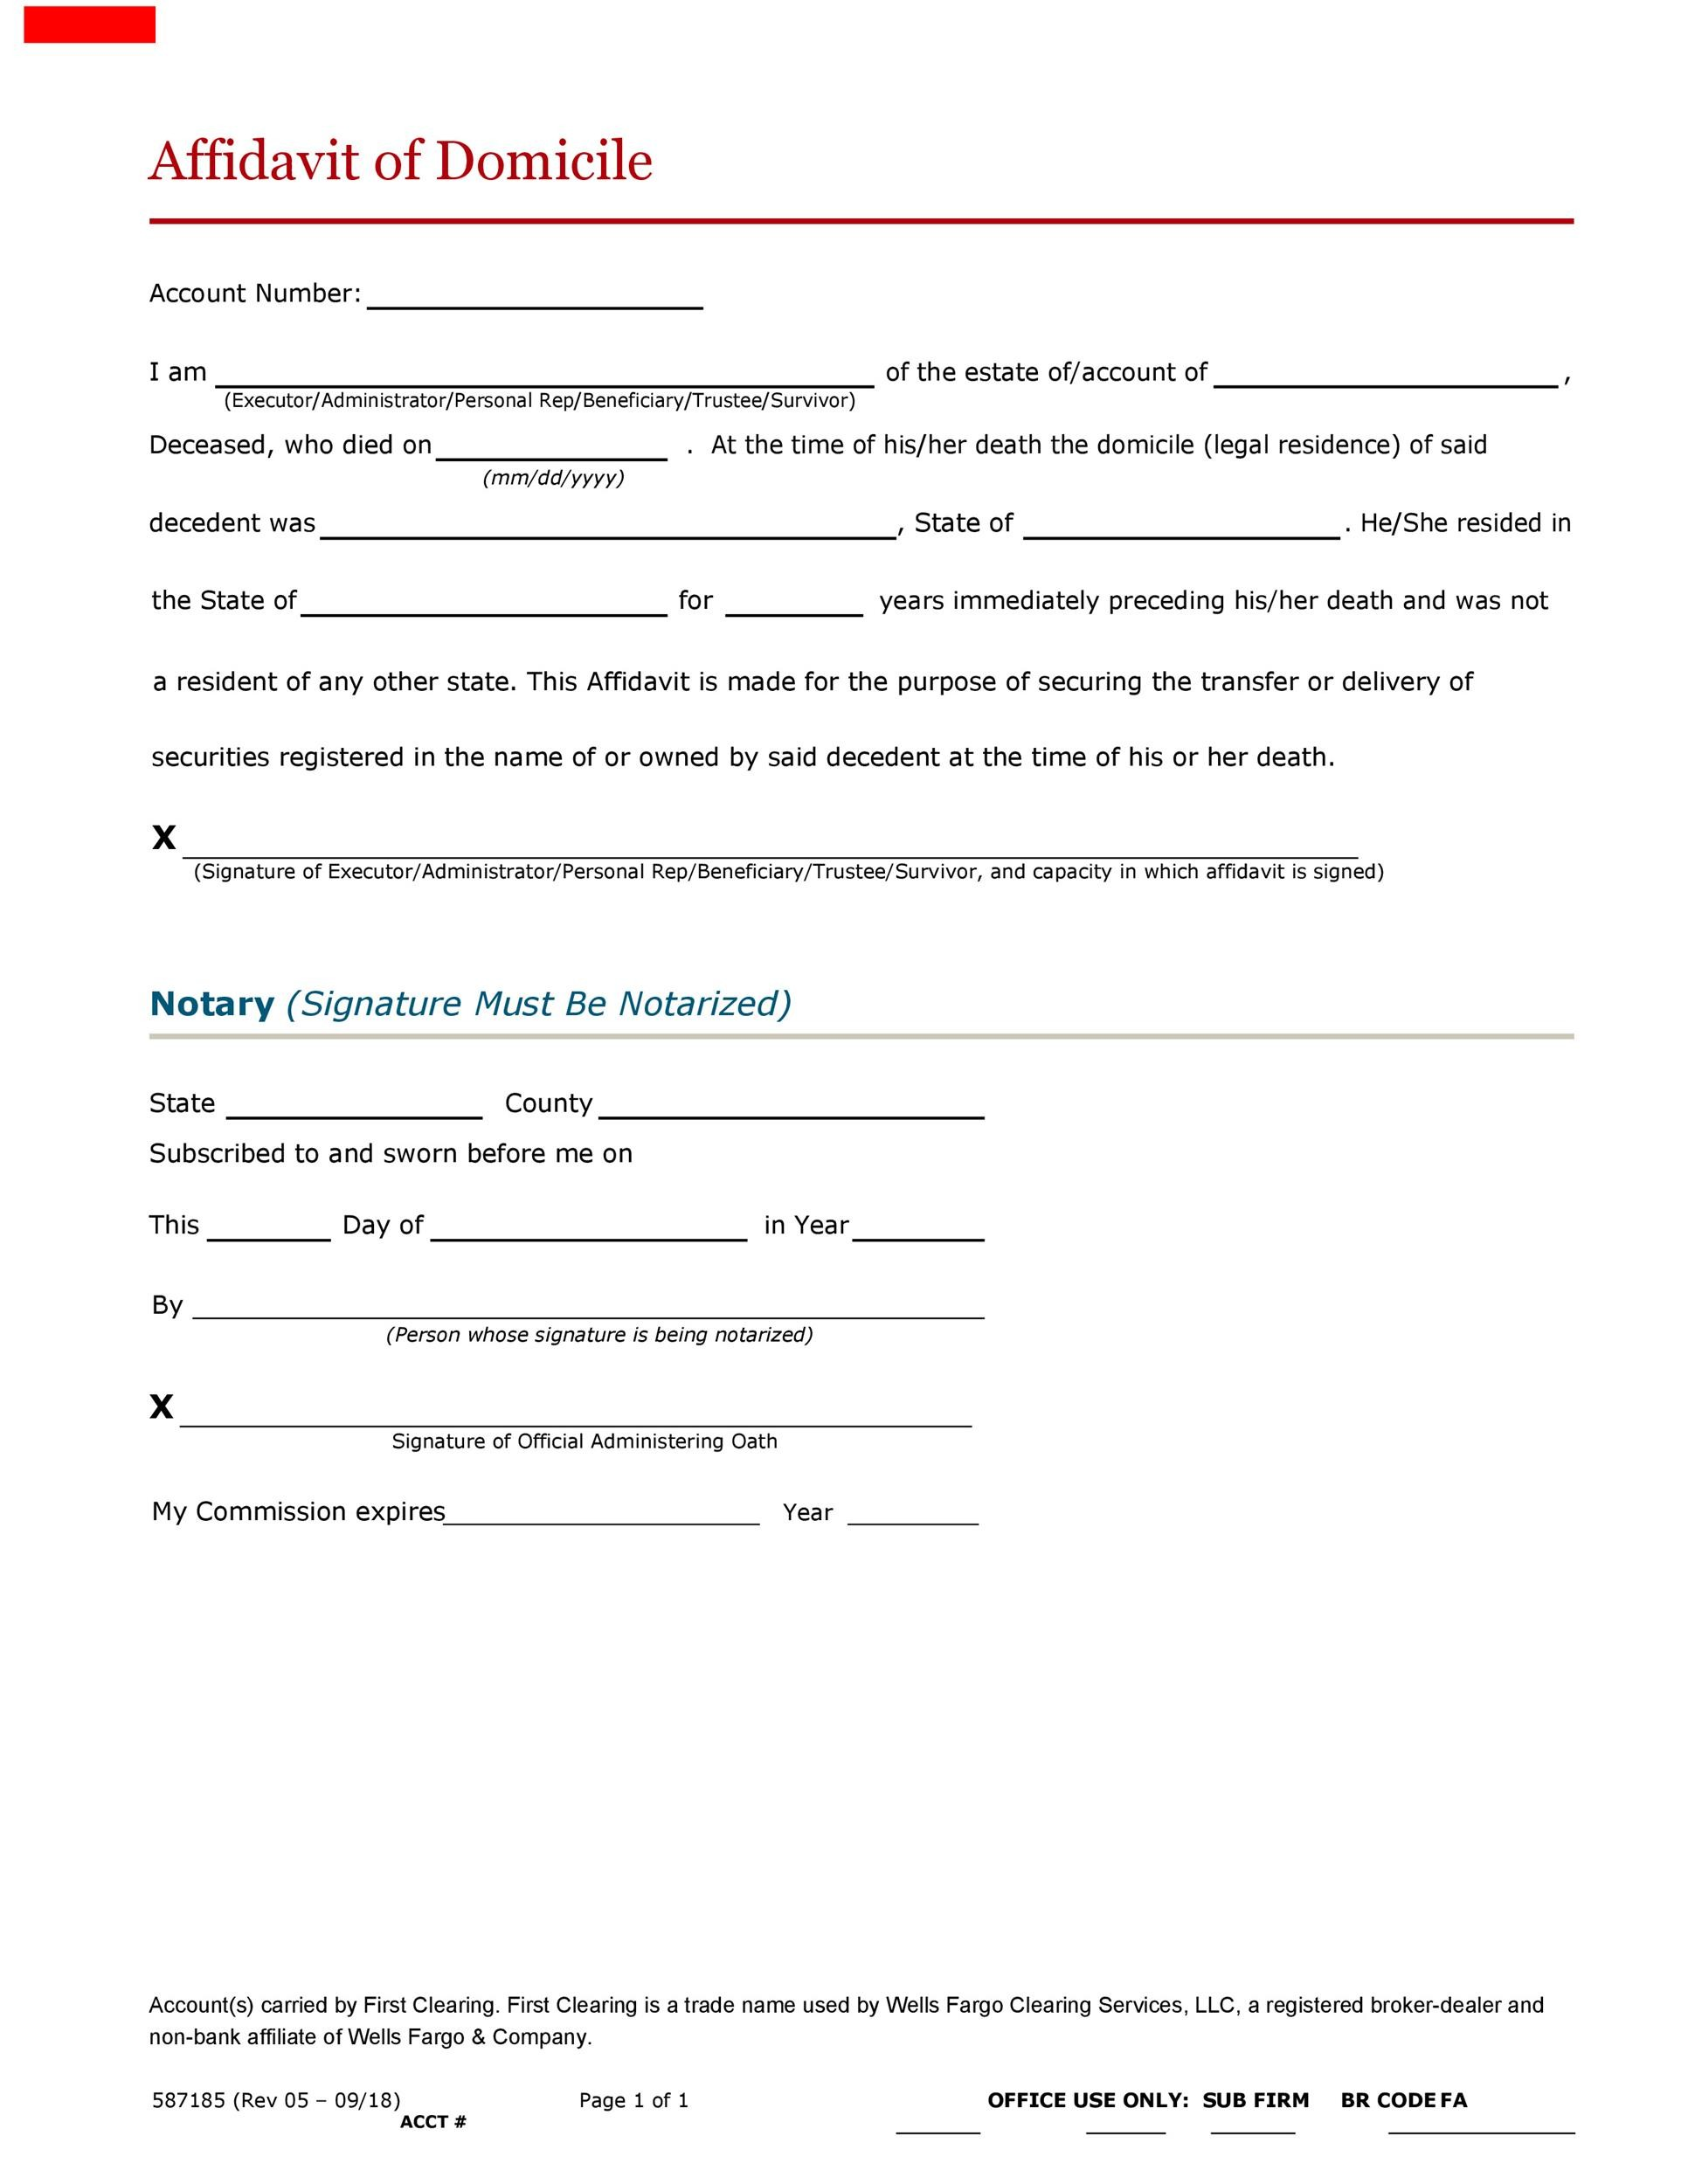 50 Professional Affidavit of Domicile Forms [100% Free] ᐅ Template Lab